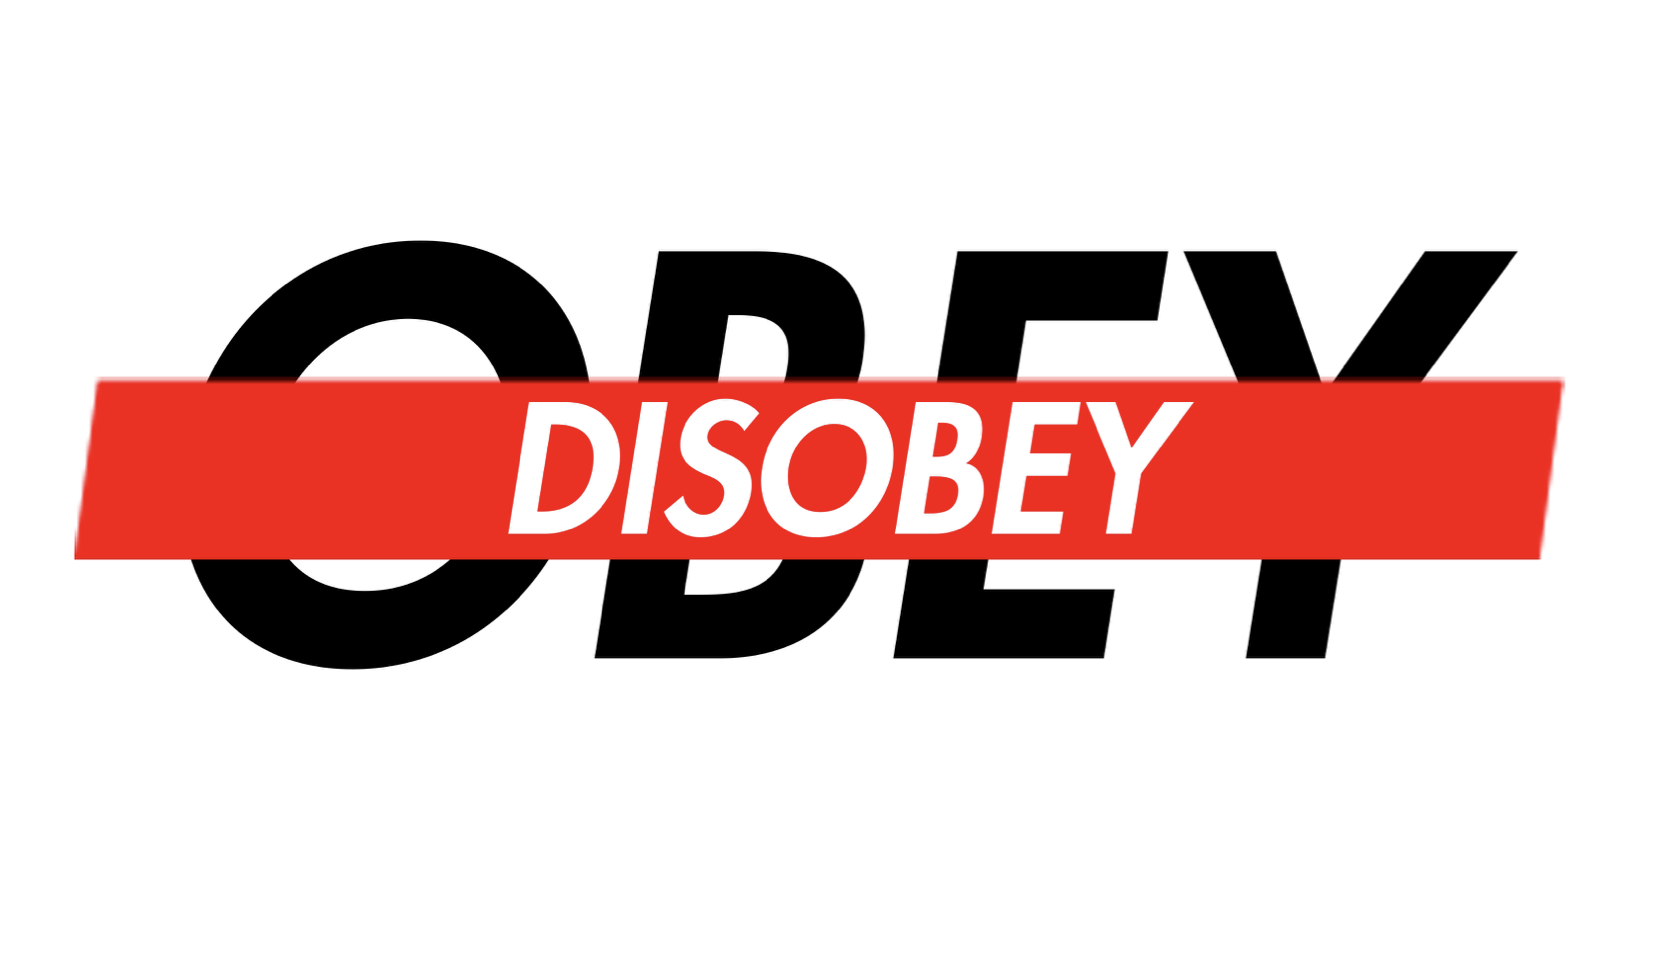 Obey Disobey The North Face Logo Retail Logos North Face Logo